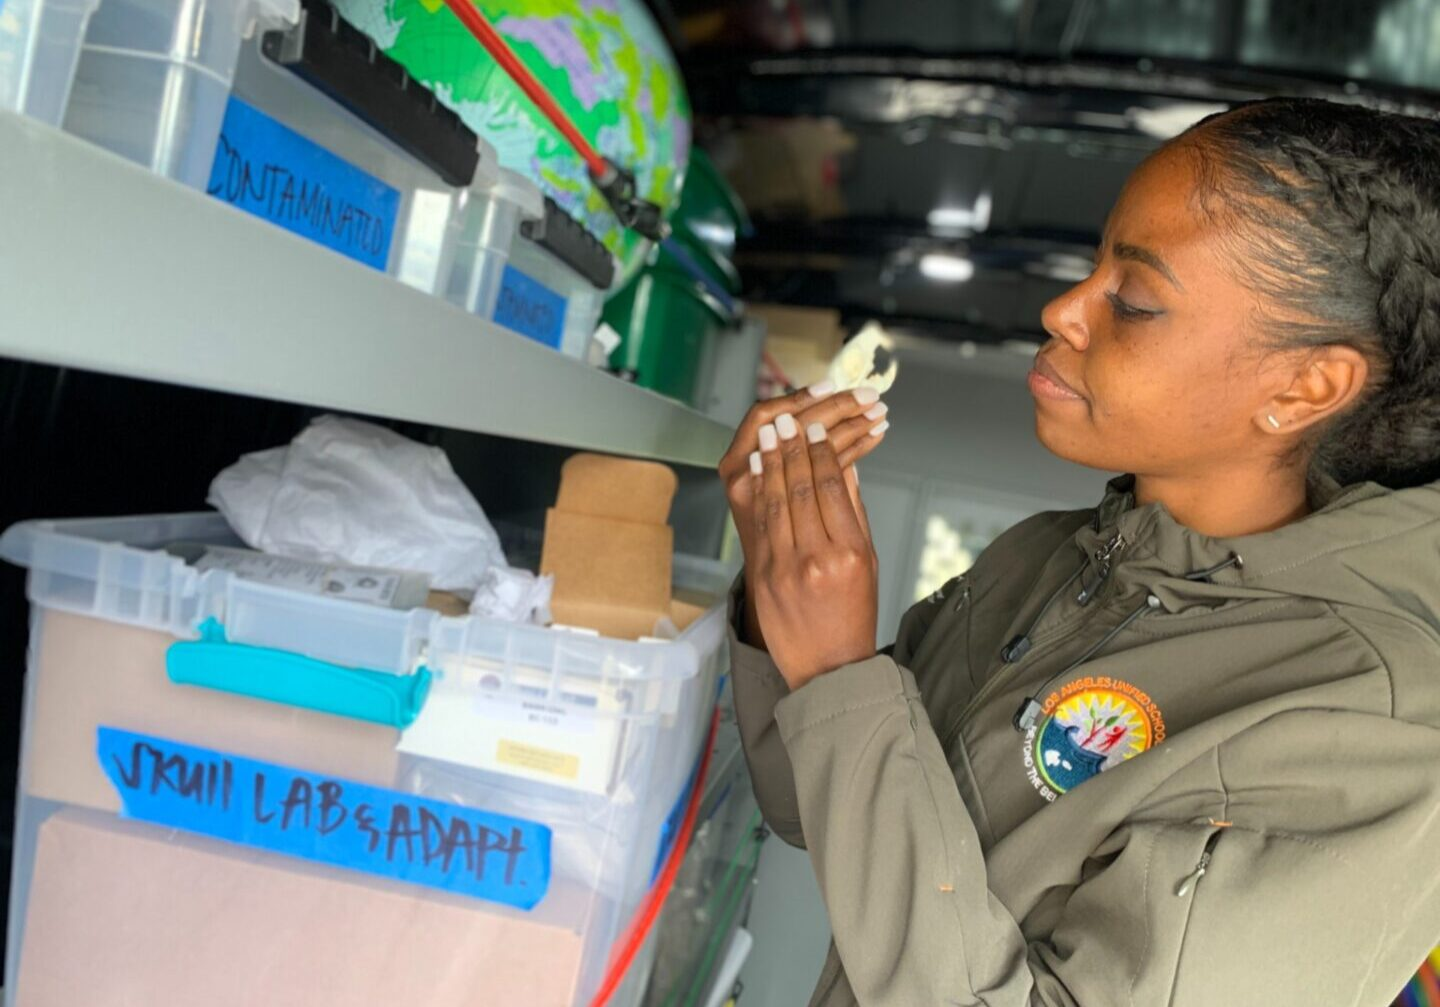 LAUSD outdoor educator Ashley Storey holds a replica skull of a small squirrel. She stands inside the back of the Eco Van, which takes STEM education to children in parks across Los Angeles. (Deepa Fernandes/The California Report)